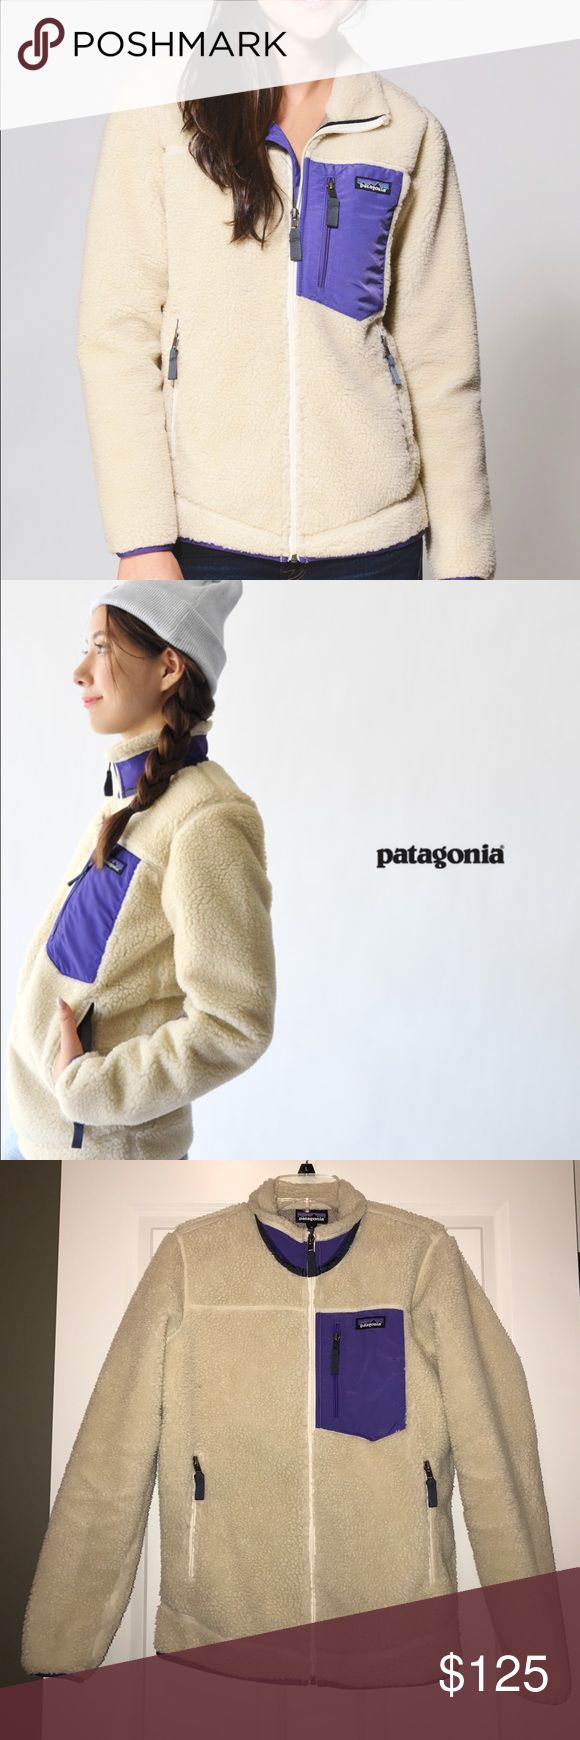 Patagonia Womens Retro X jacket medium Patagonia retro x jacket worsens medium. This is such a comfortable jacket for cold weather! It keeps you so warm and is cute as can be! Patagonia Jackets & Coats Utility Jackets